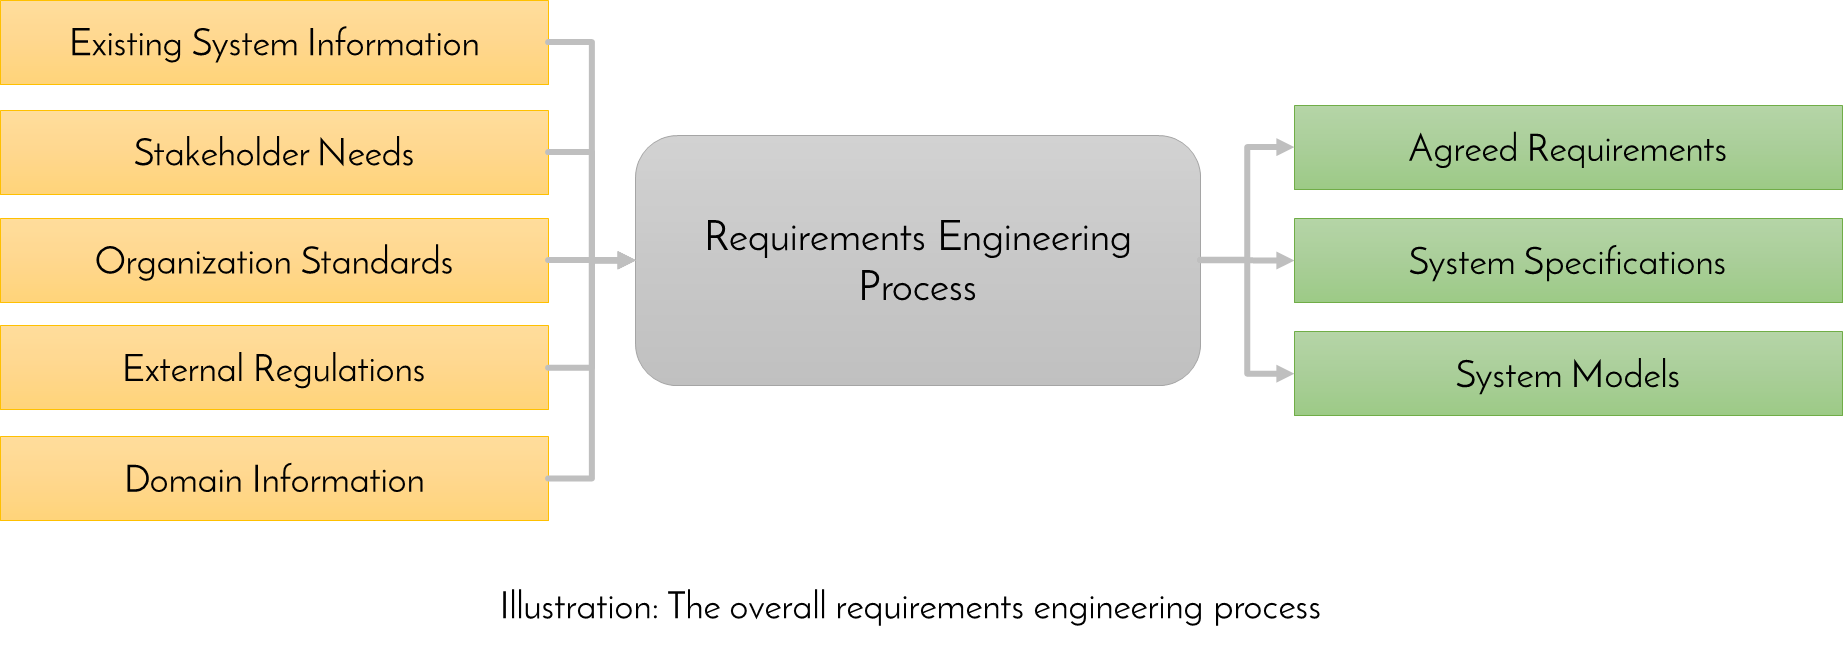 Principles Of Requirements Engineering Or Requirements Management - Software requirements